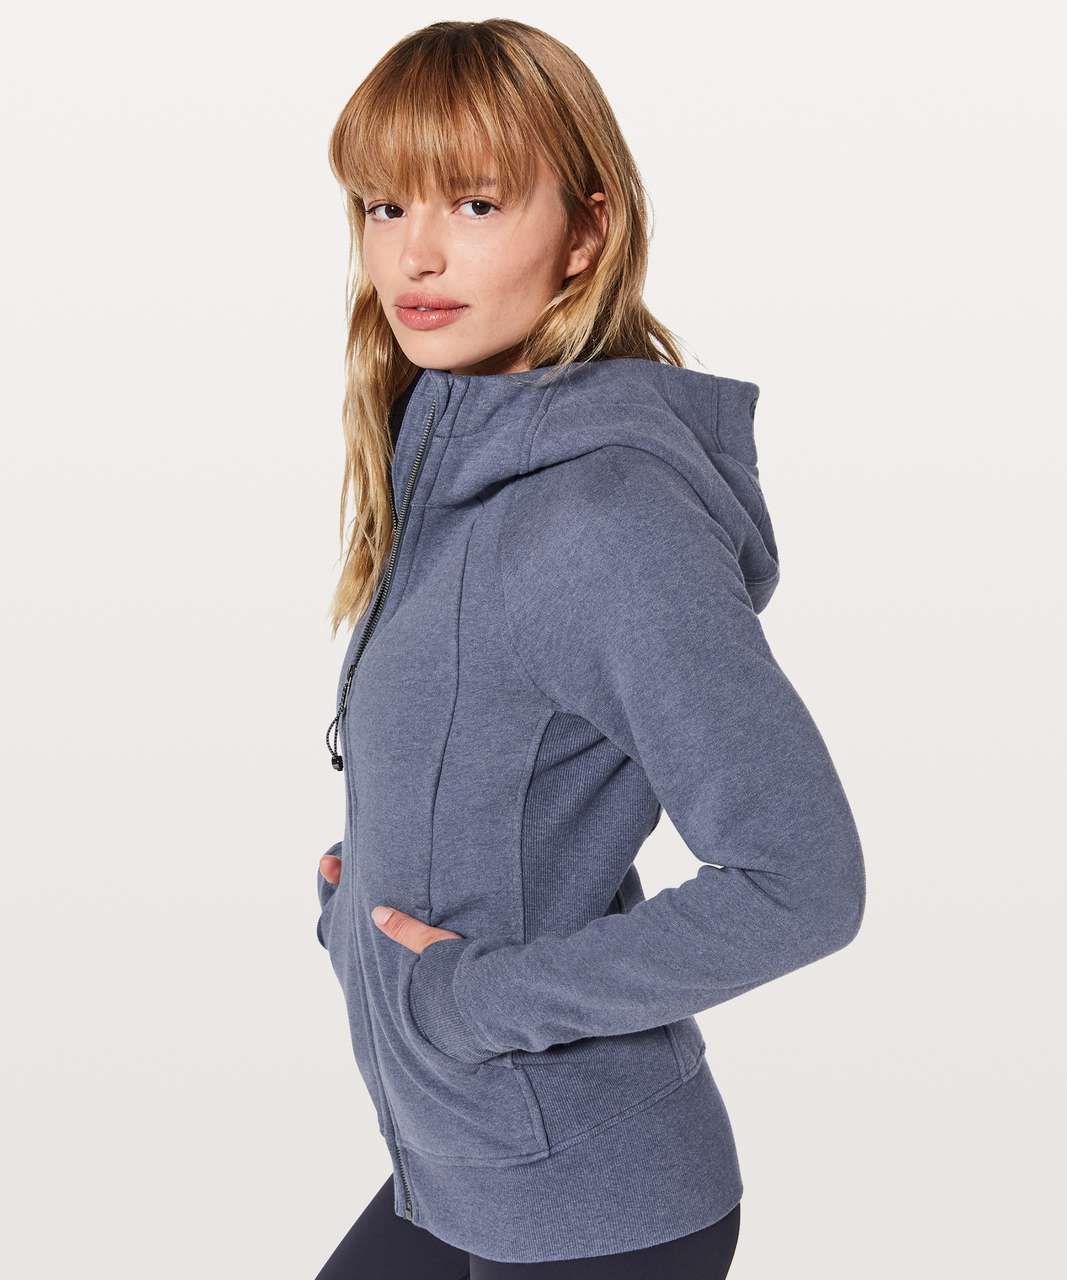 Lululemon Scuba Hoodie *Light Cotton Fleece - Heathered Dazed / Dazed